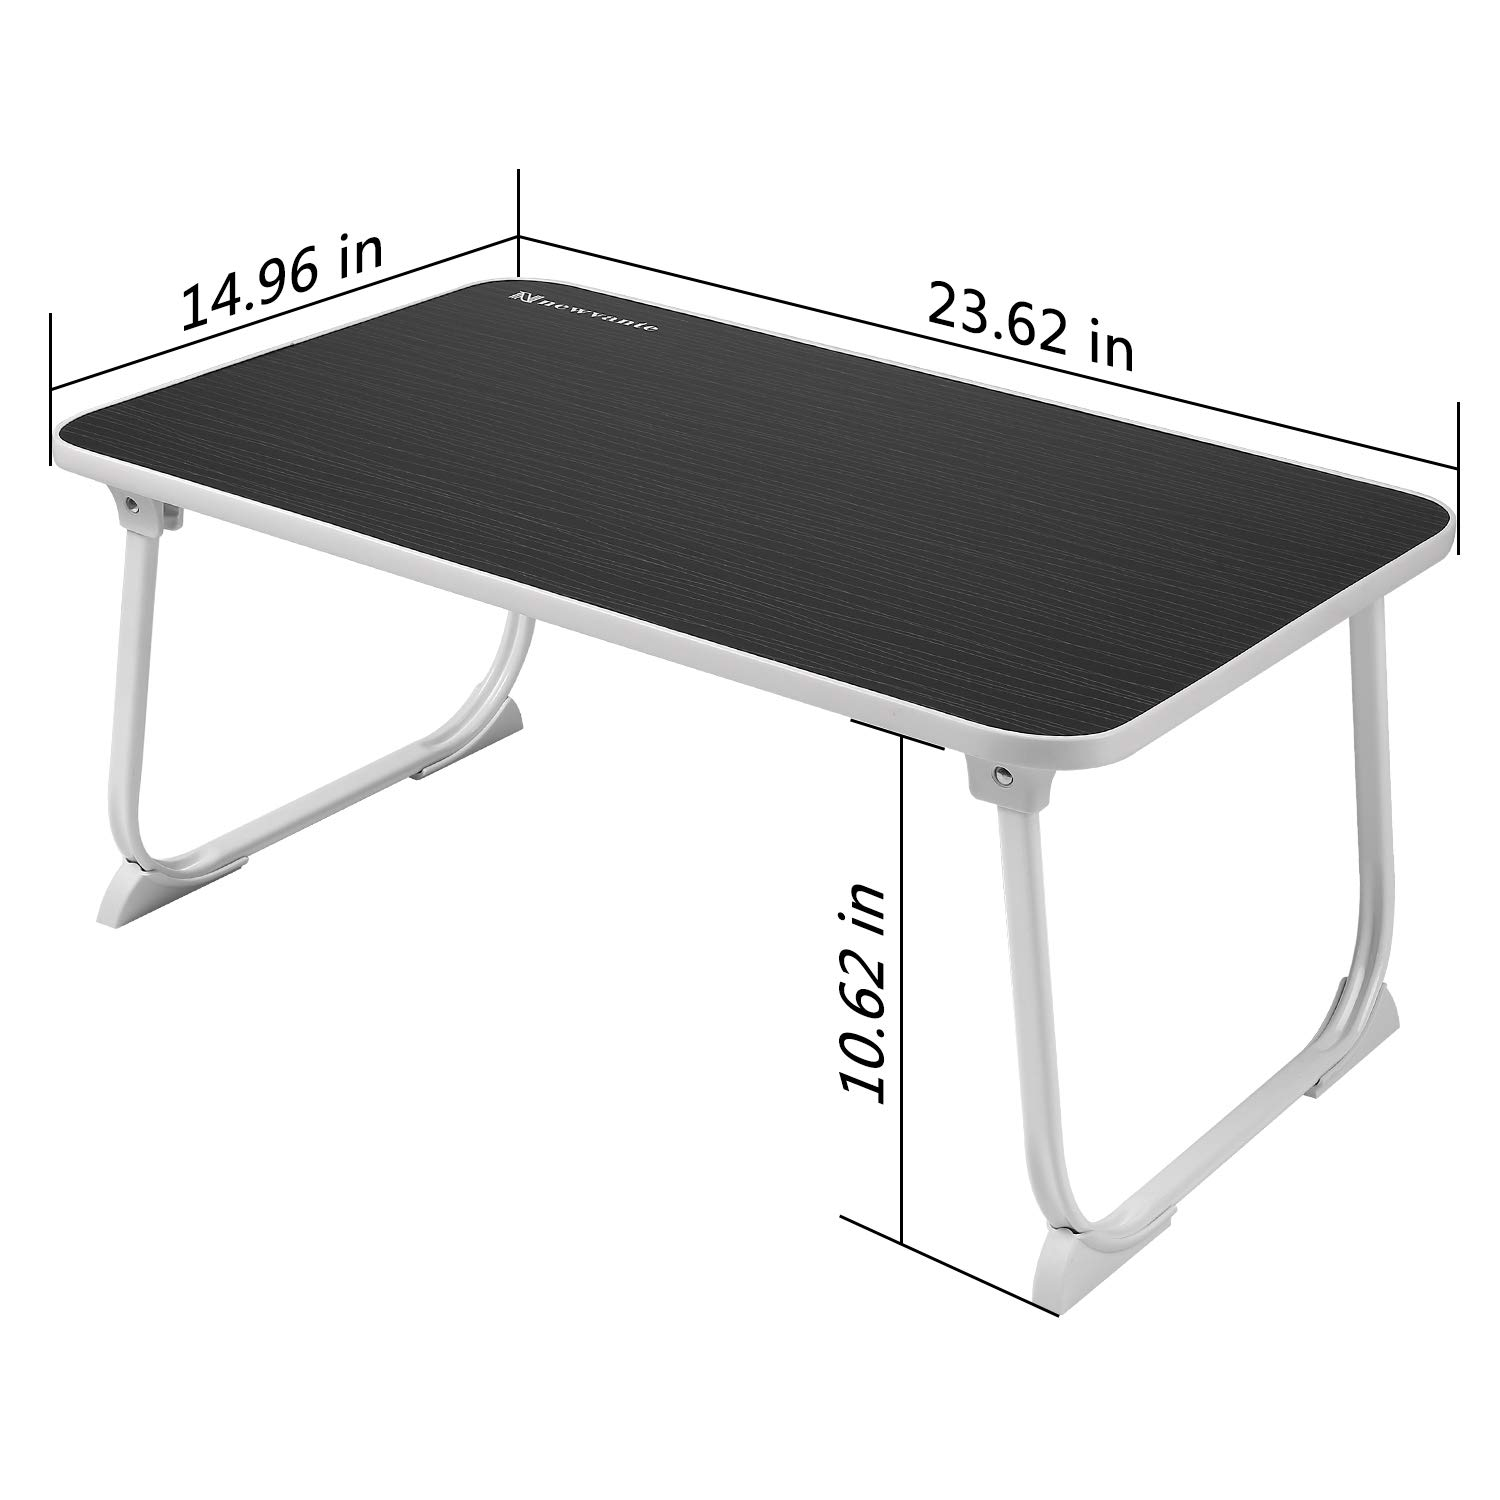 Large Lap Desk Bed Tray NNEWVANTE Laptop Table Desk Foldable Portable Standing Breakfast Reading Tray Holder for Couch Floor Students Kids Young Color(Black) by NNEWVANTE (Image #3)